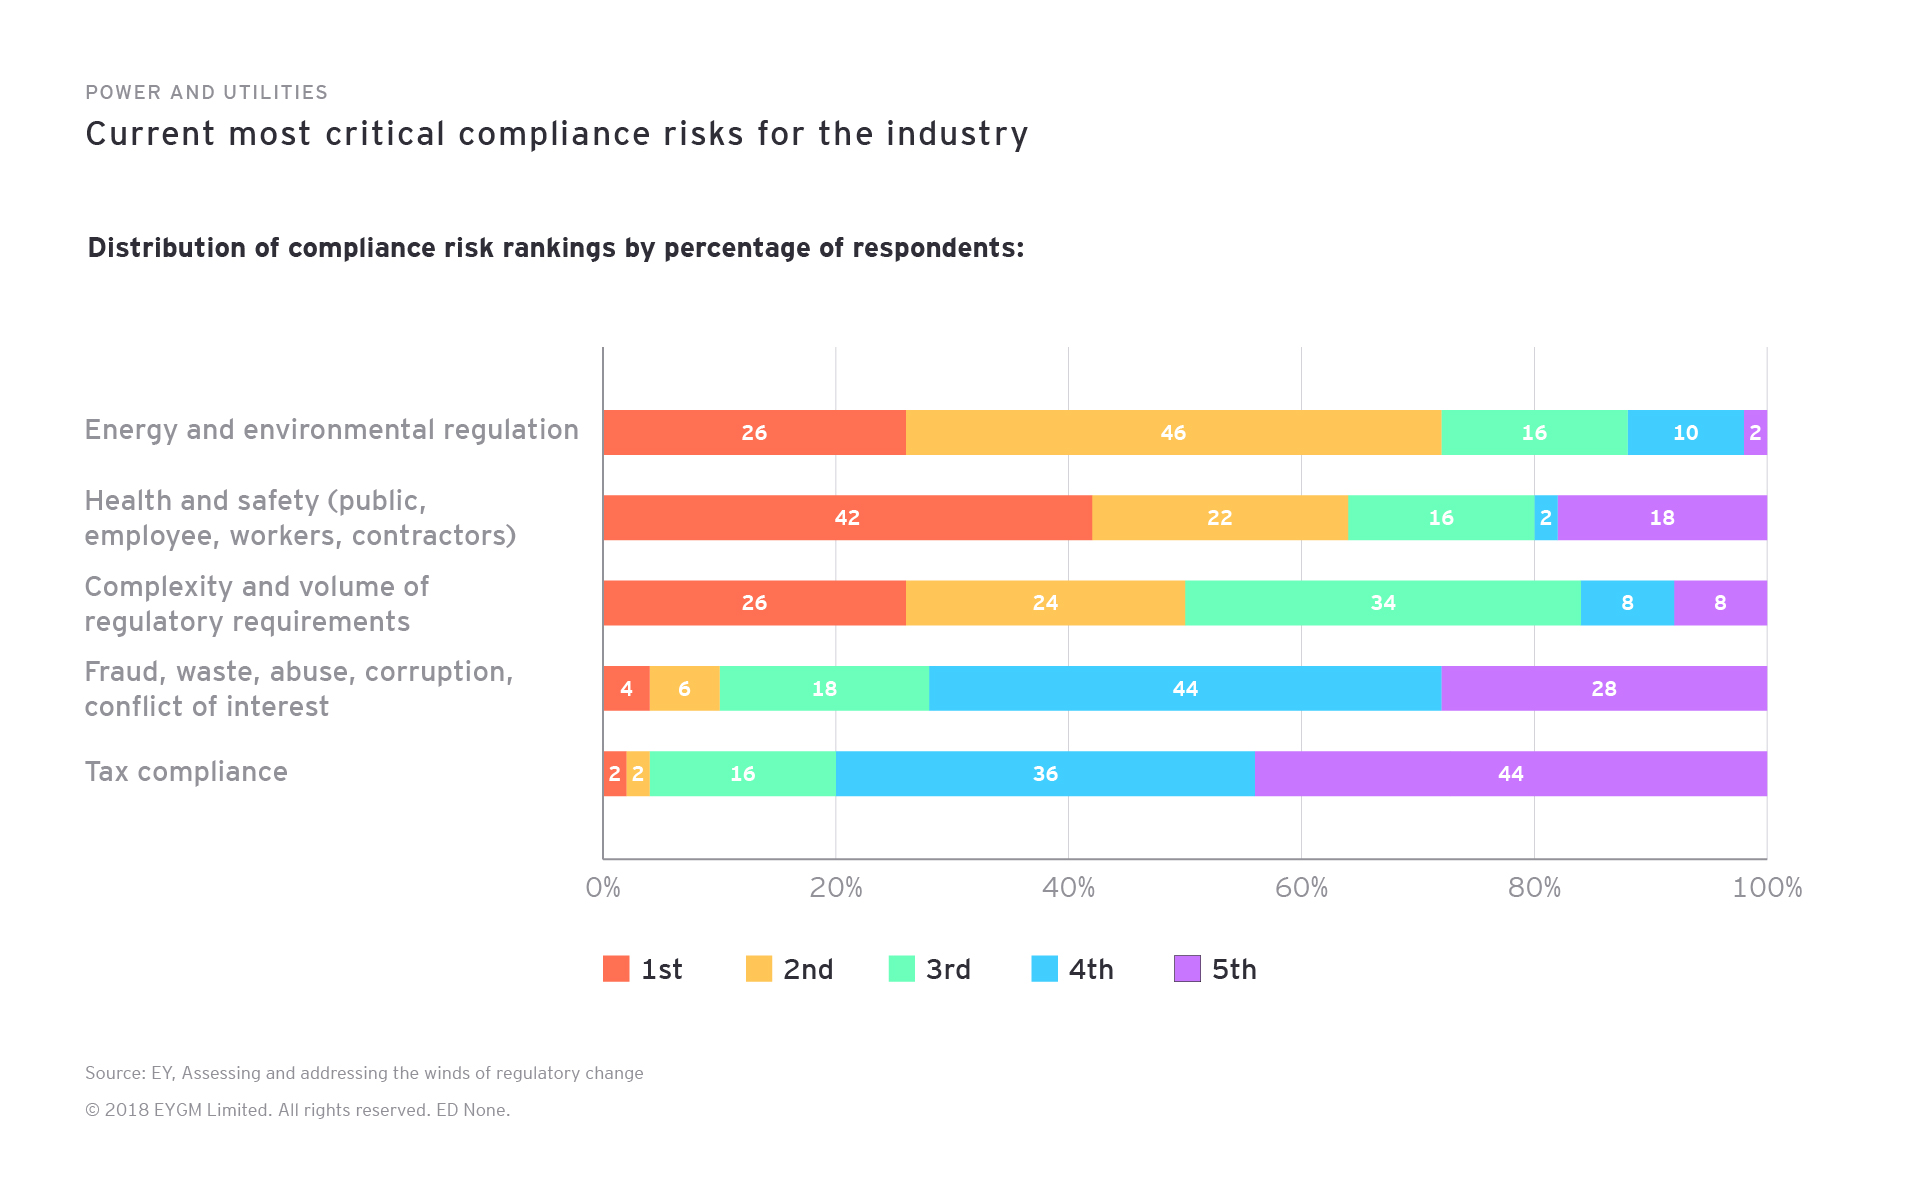 Power and Utilities. Current most critical compliance risks for the industry